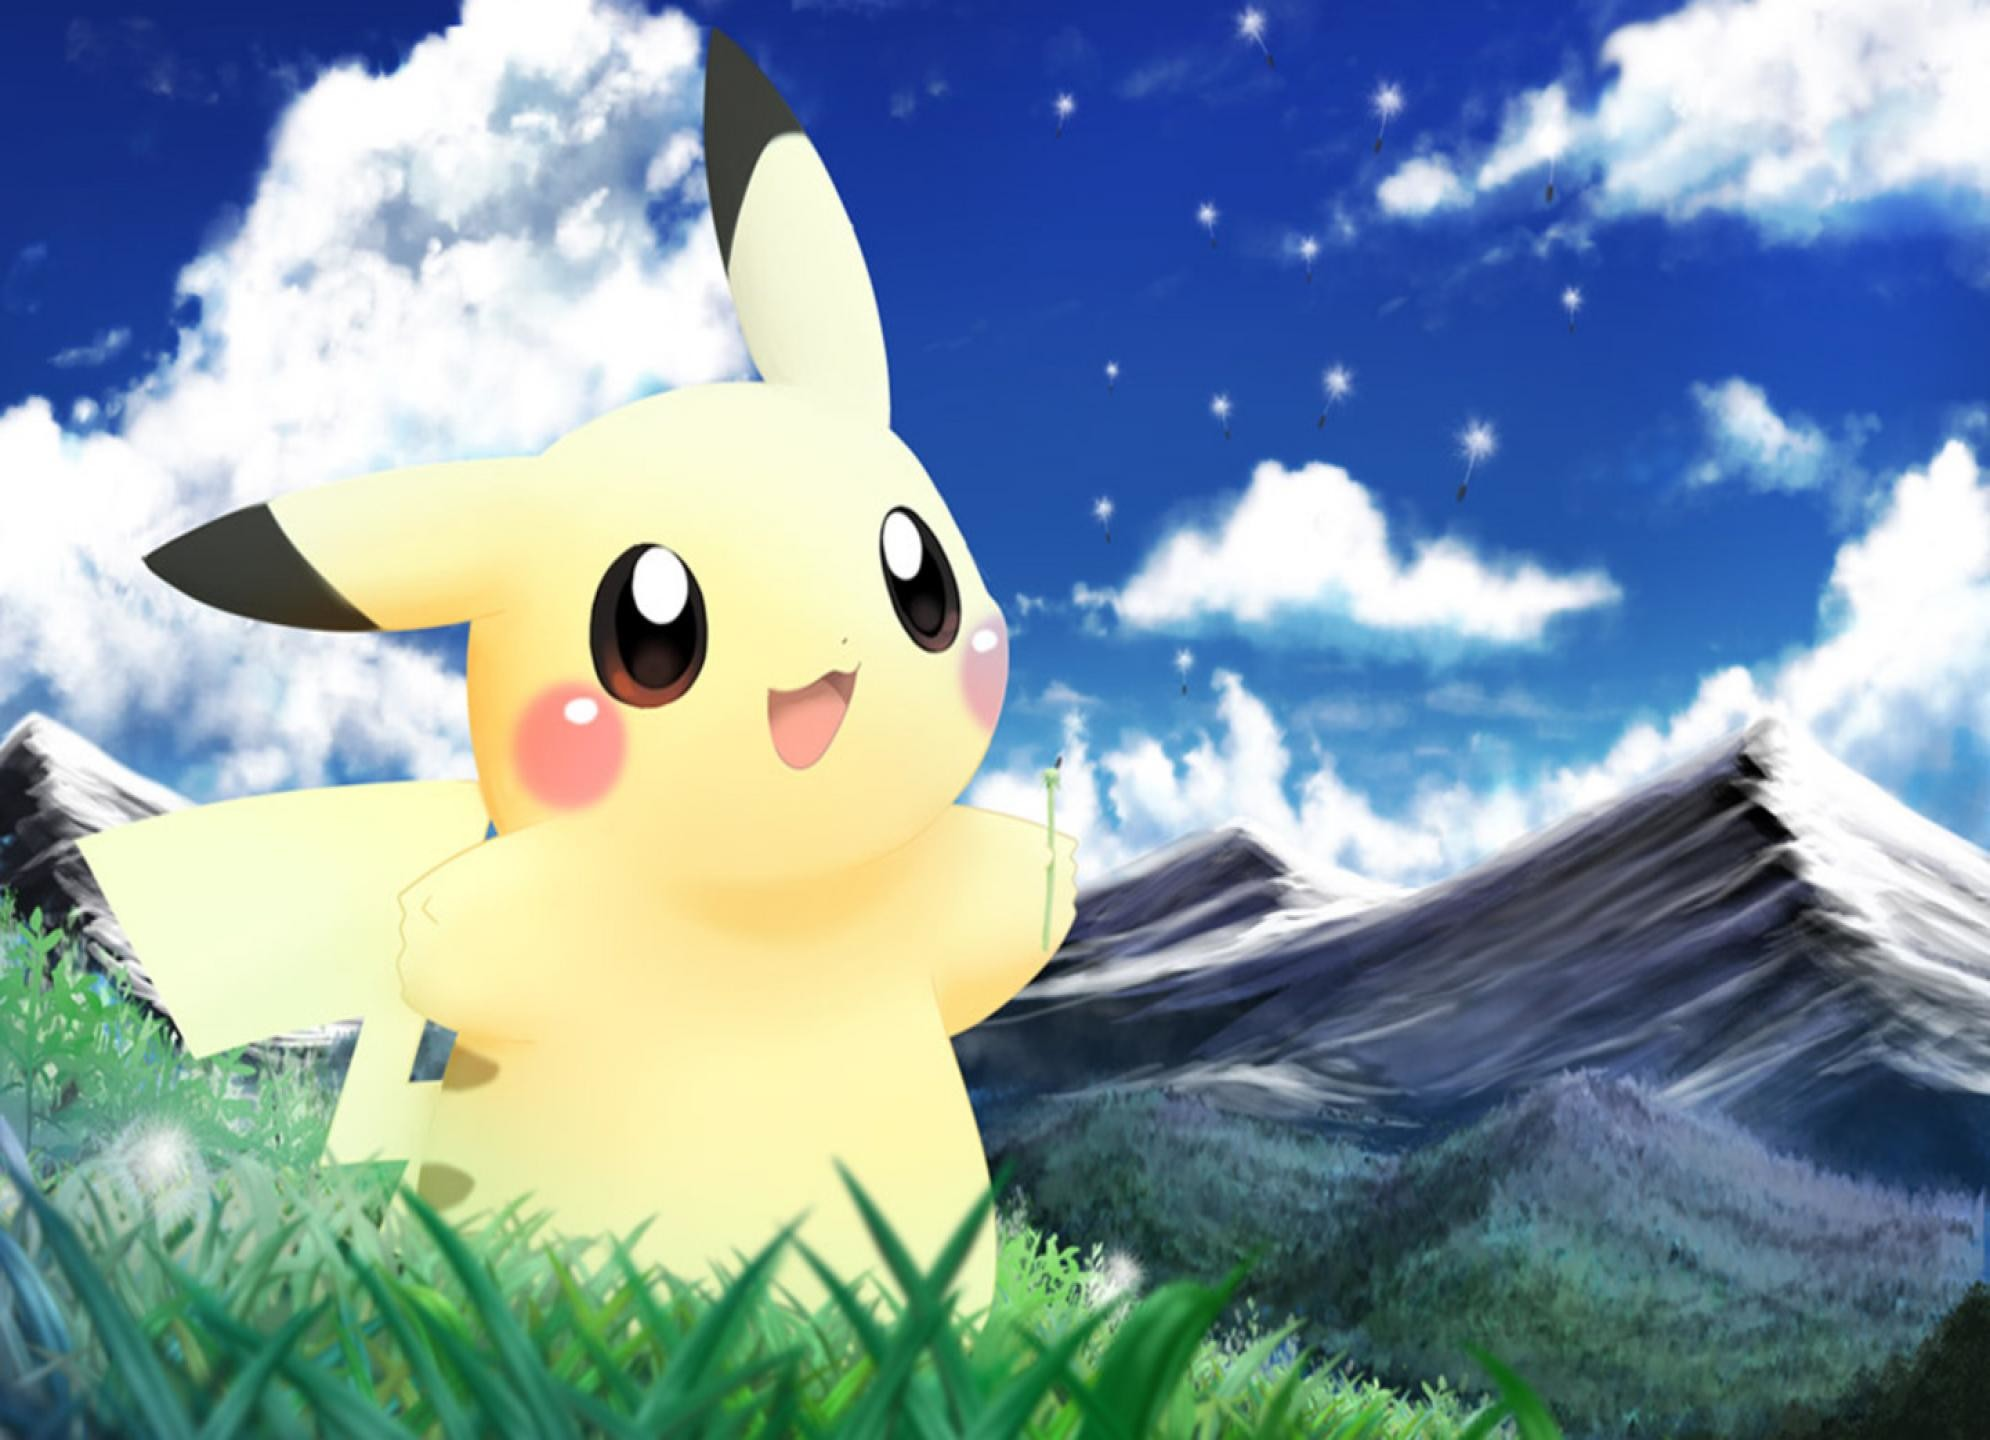 Cute pikachu wallpaper - Kawaii pikachu ...